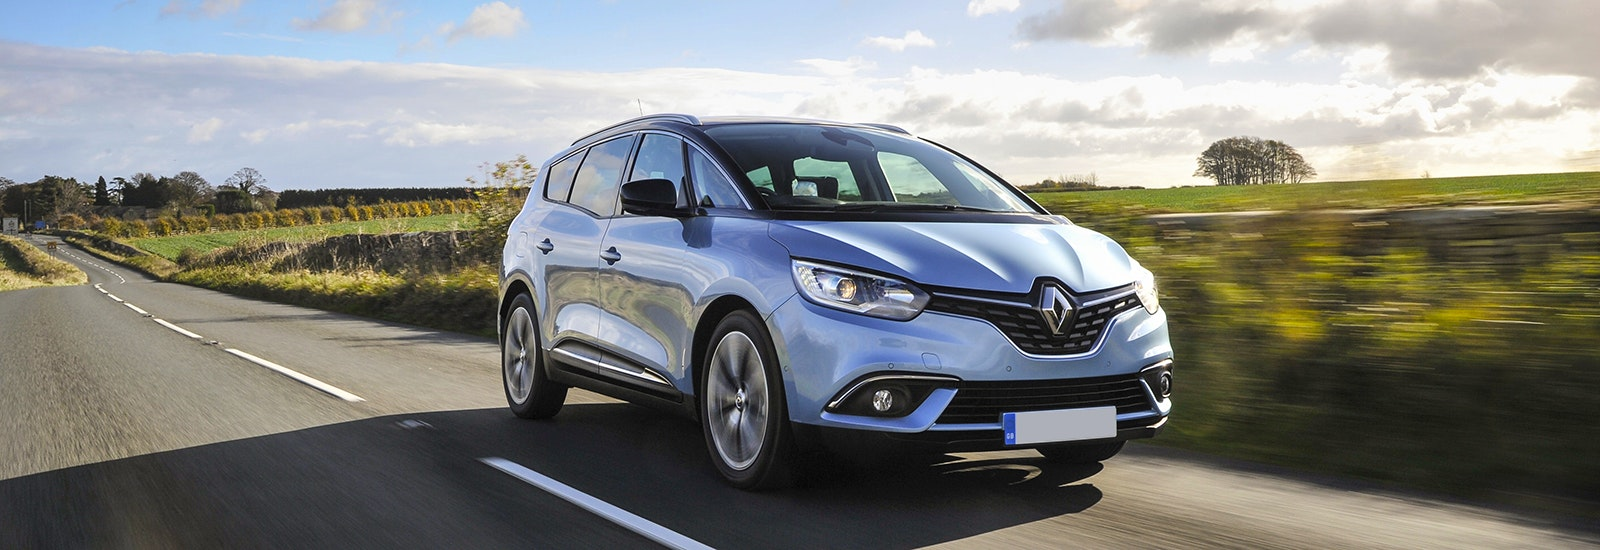 2017 Renault Scrappage Scheme What Cars Qualify Carwow Autos Post